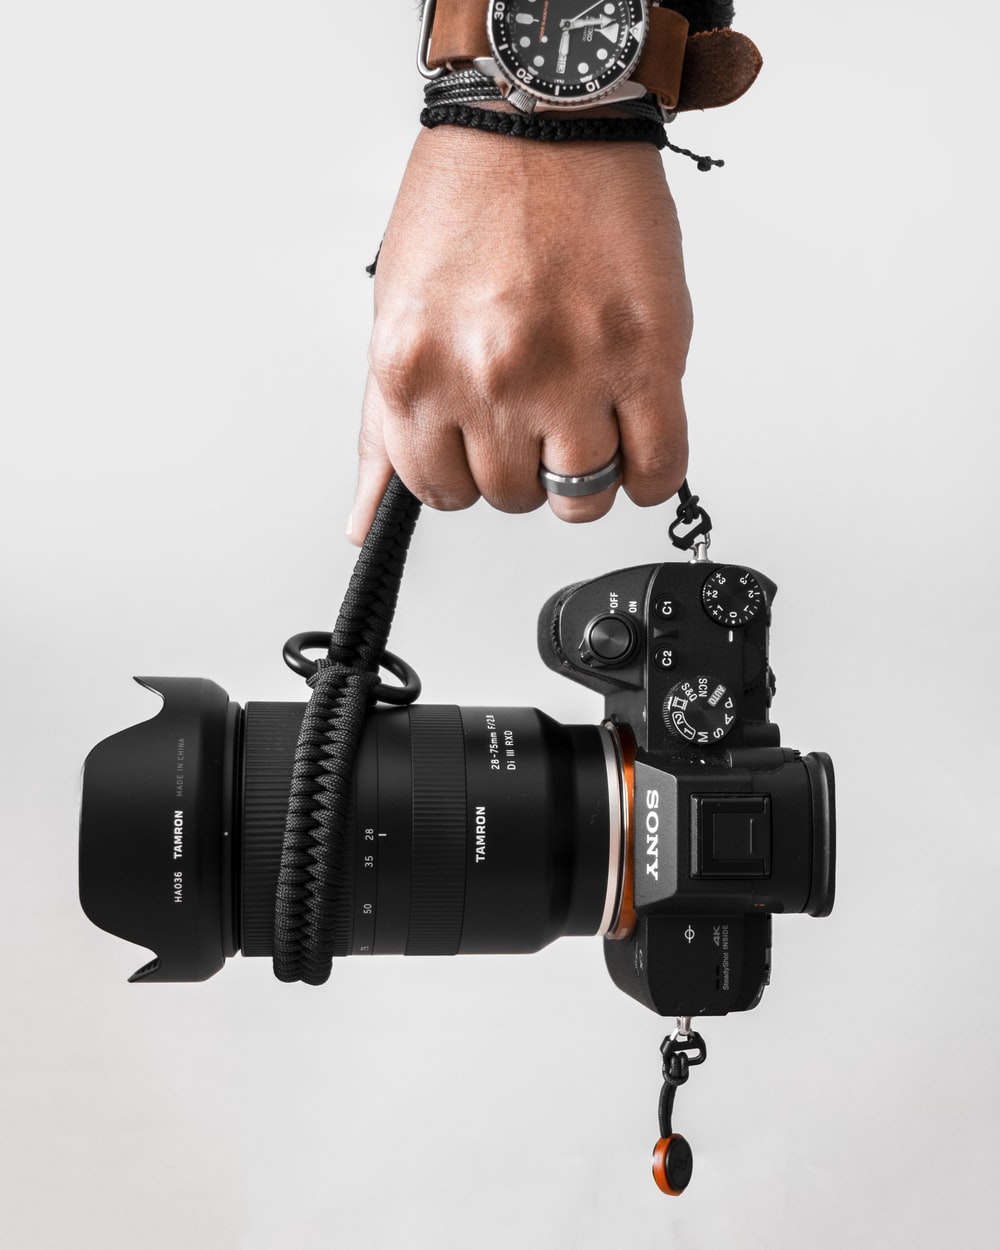 person holding black Sony DSLR camera